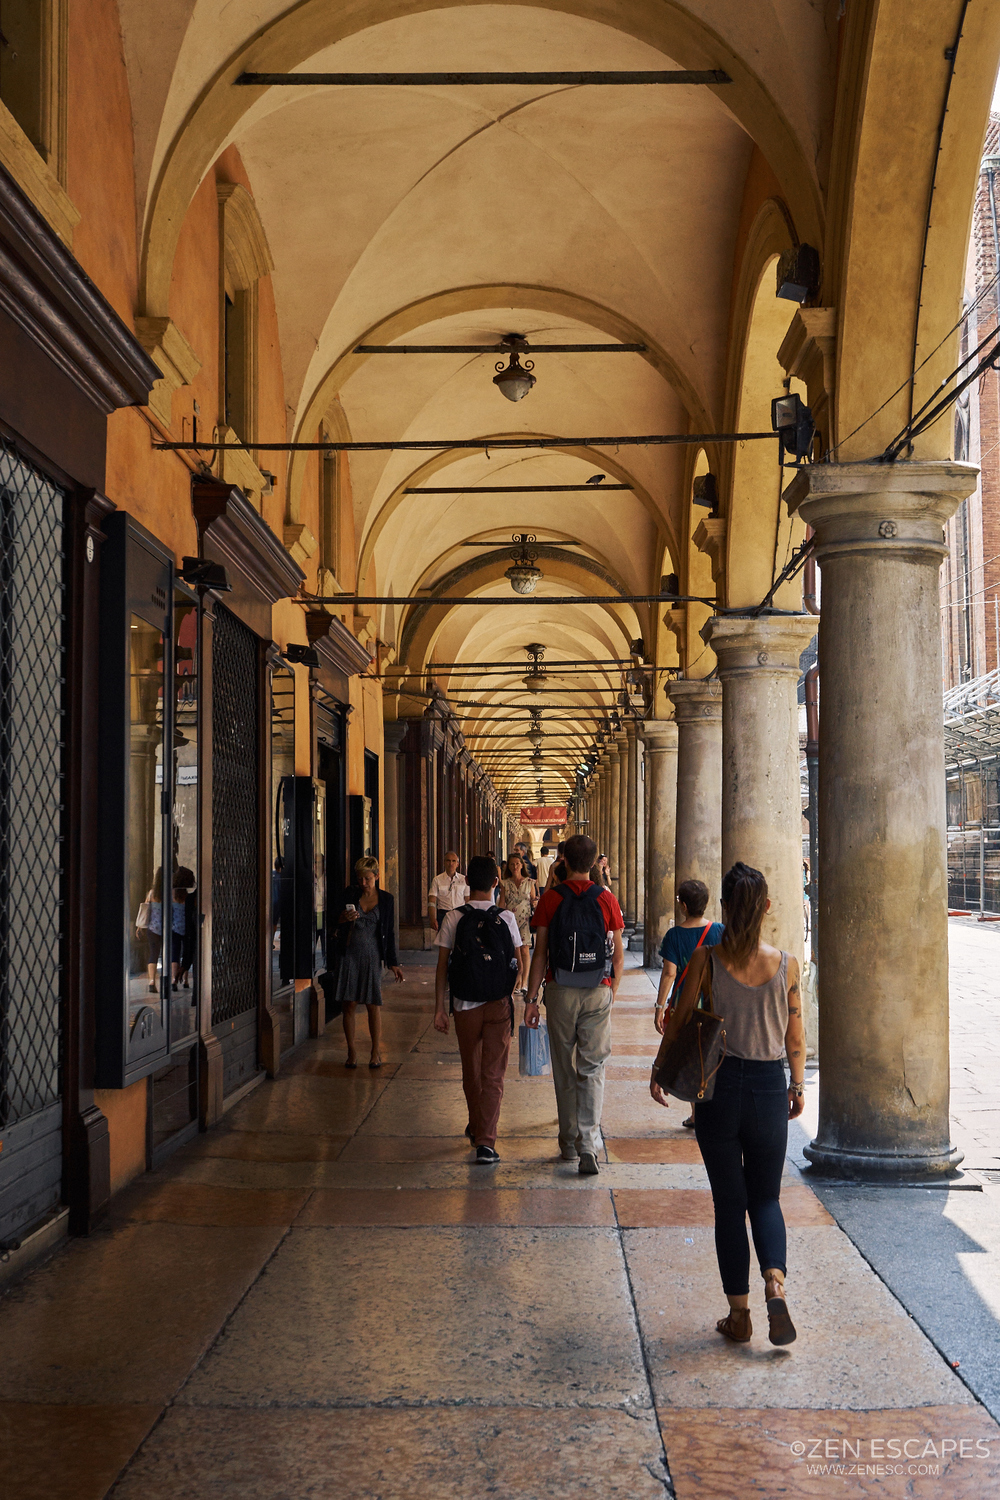 City arcades or Porticos. Bologna is famous for it's porticos, in total there is 38 in total in the city centre, spanning 45km. The longest portico in the world is also located here, 3.5km long, but I didn't visit it due to the location and reason mentioned beforehand.